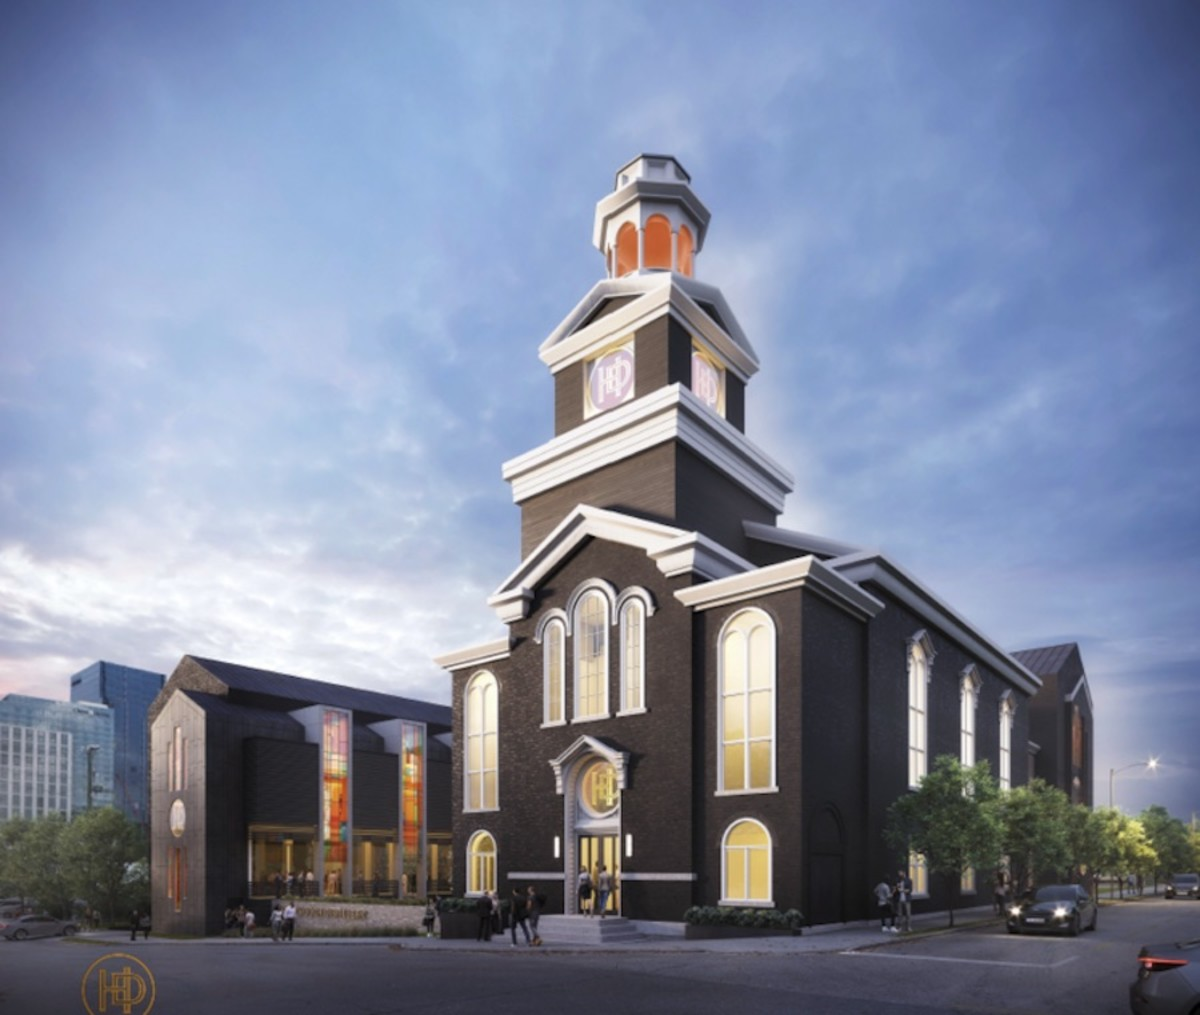 Design for Heaven's Door Distillery and Center for the Arts in Nashville